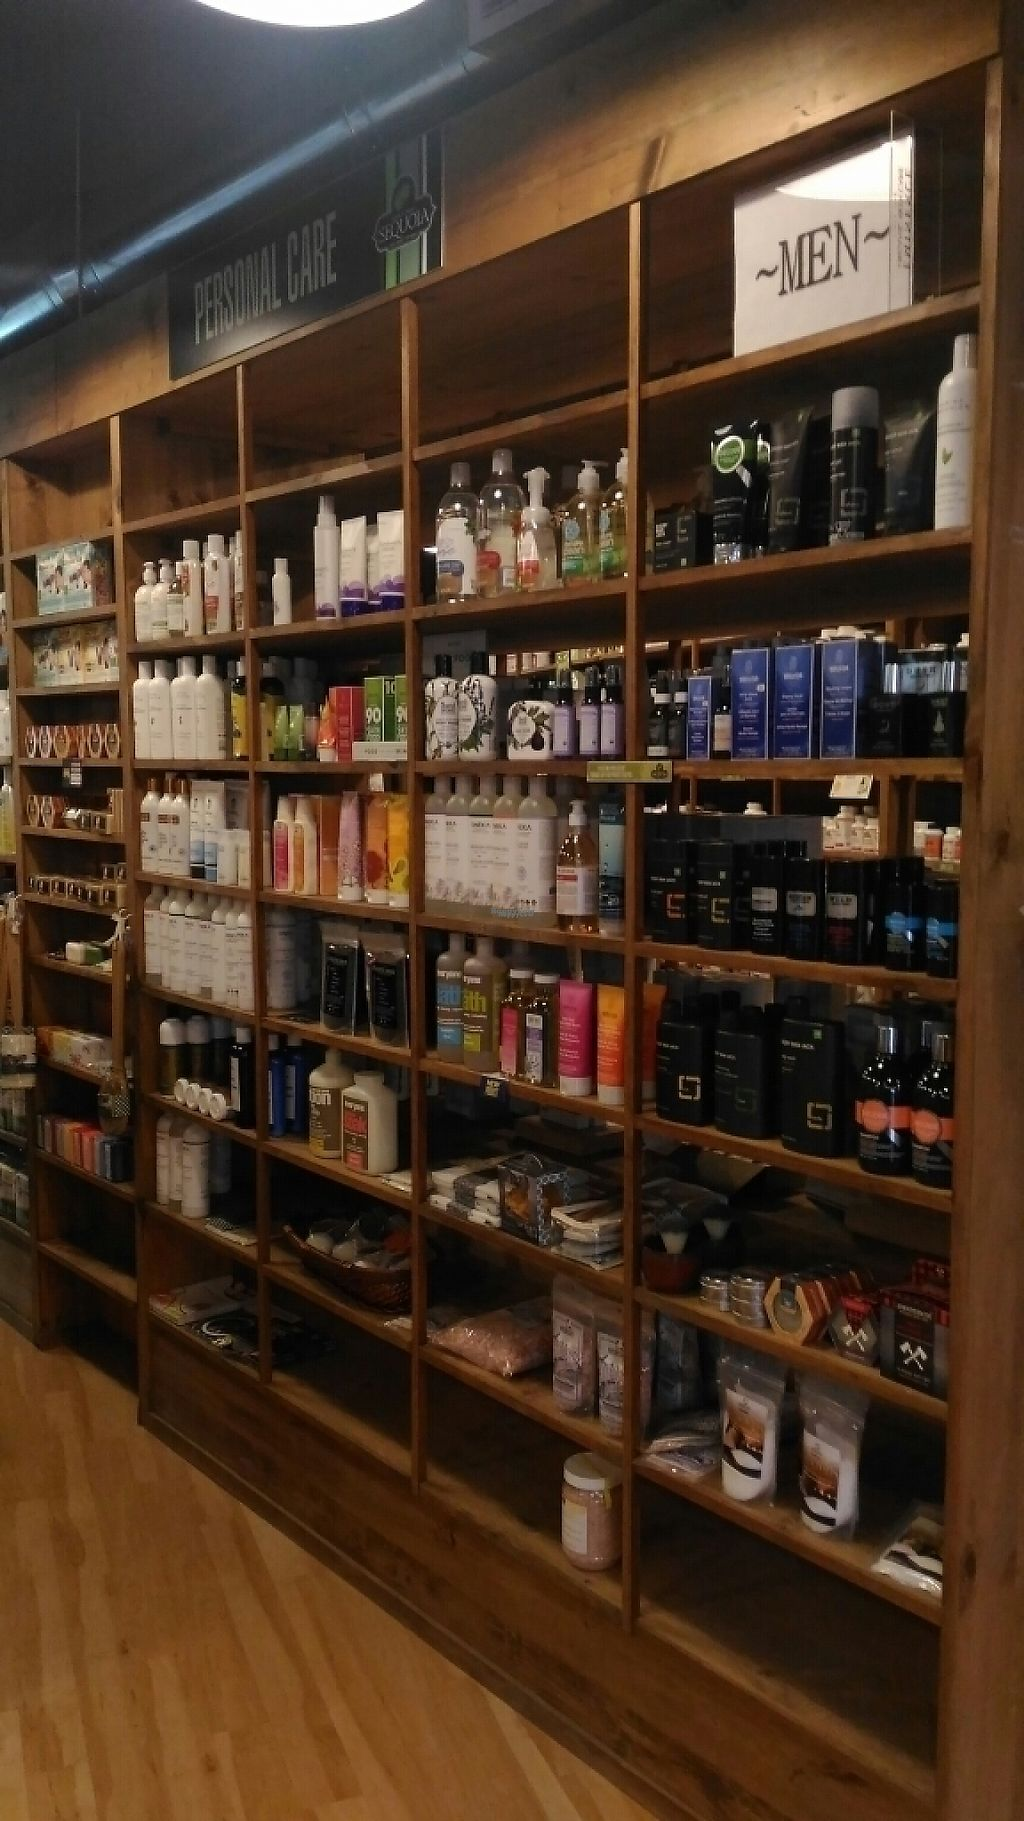 """Photo of Sequoia - Highfield St  by <a href=""""/members/profile/QuothTheRaven"""">QuothTheRaven</a> <br/>natural products <br/> March 7, 2017  - <a href='/contact/abuse/image/6635/233956'>Report</a>"""